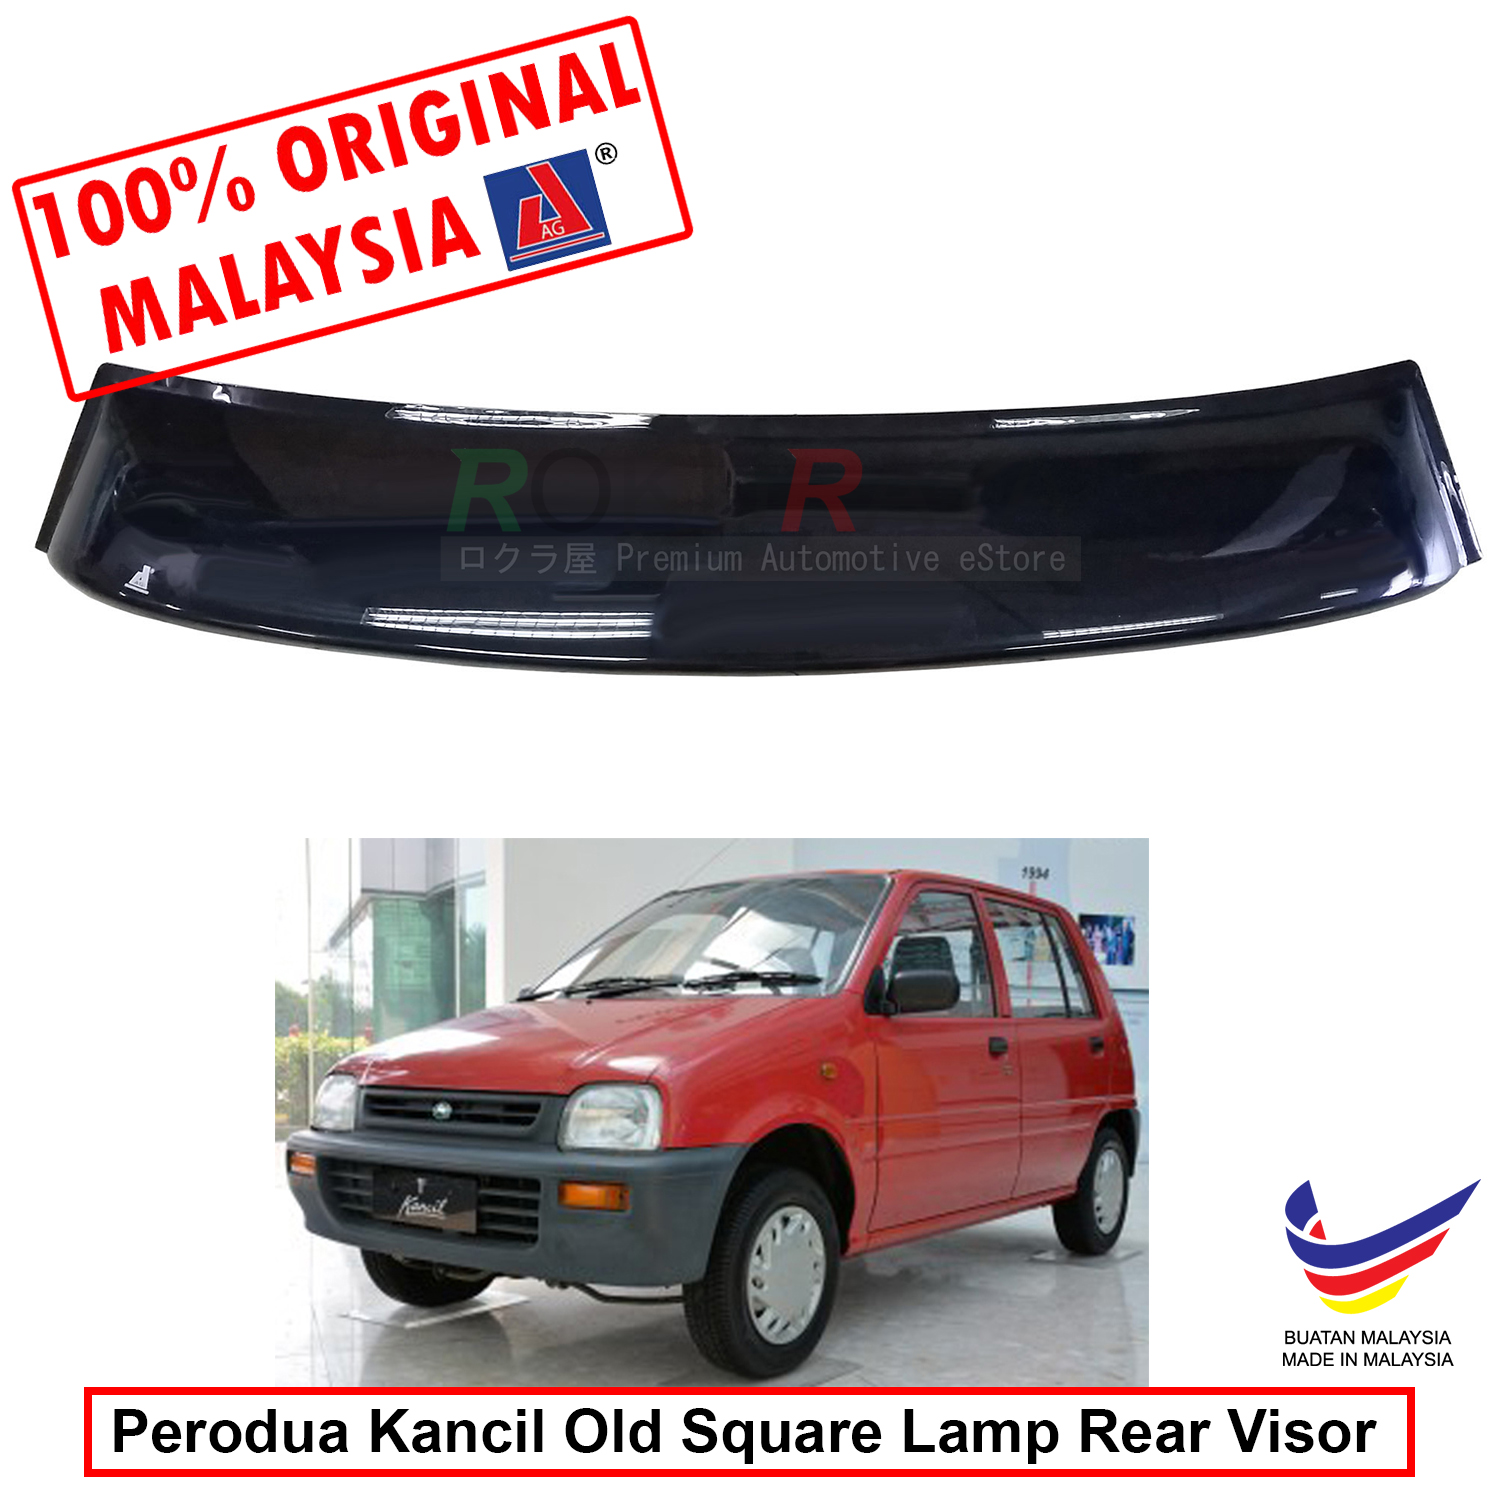 Kancil Old (Square Head Lamp) AG Rear Wing Spoiler Visor (Big 20cm)